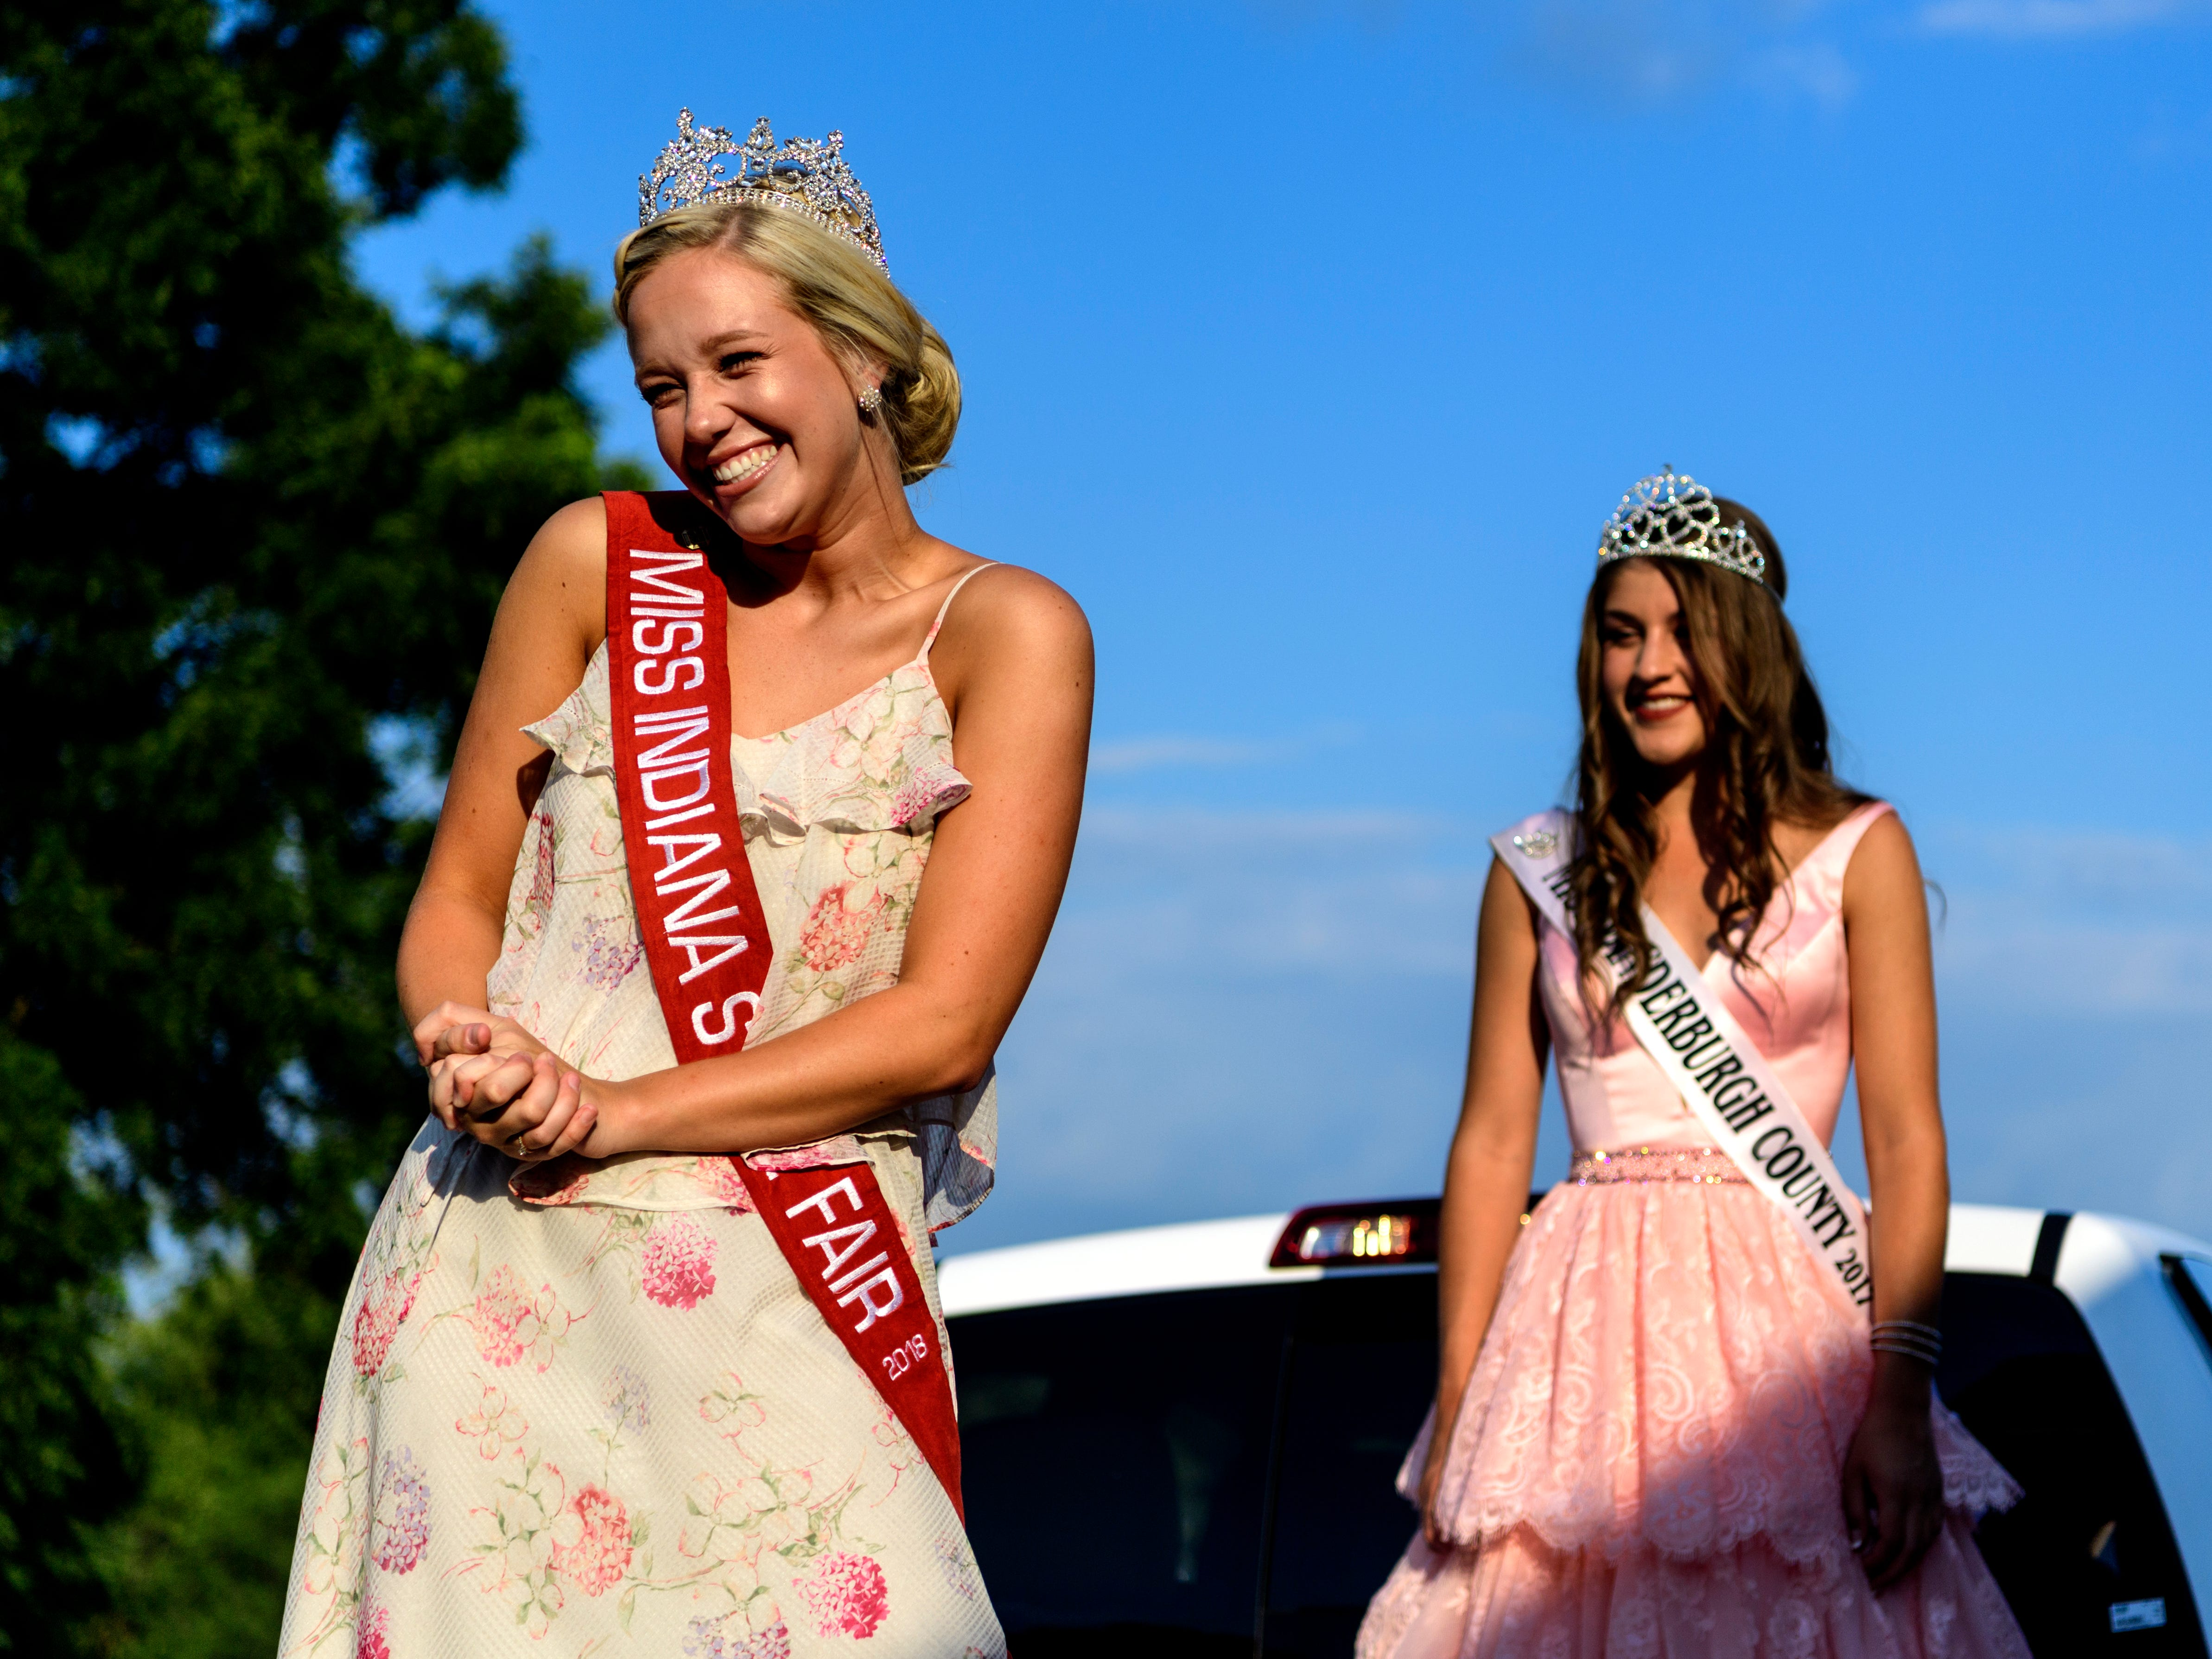 Audrey Campbell, the 2018 Miss Indiana State Fair Queen, left, beams with excitement as she meets fair-goers while riding on the back of a Toyota Tacoma pick-up truck with Holly Witten, the 2017 Miss Vanderburgh County 4-H Fair Queen, right, before attending the Vanderburgh County Fair pageant in the 4-H Center auditorium, Monday evening, July 23, 2018. Campbell, who is the 60th Indiana State Fair Queen, will have traveled to over 40 county fairs around the state by the time fair season is over.